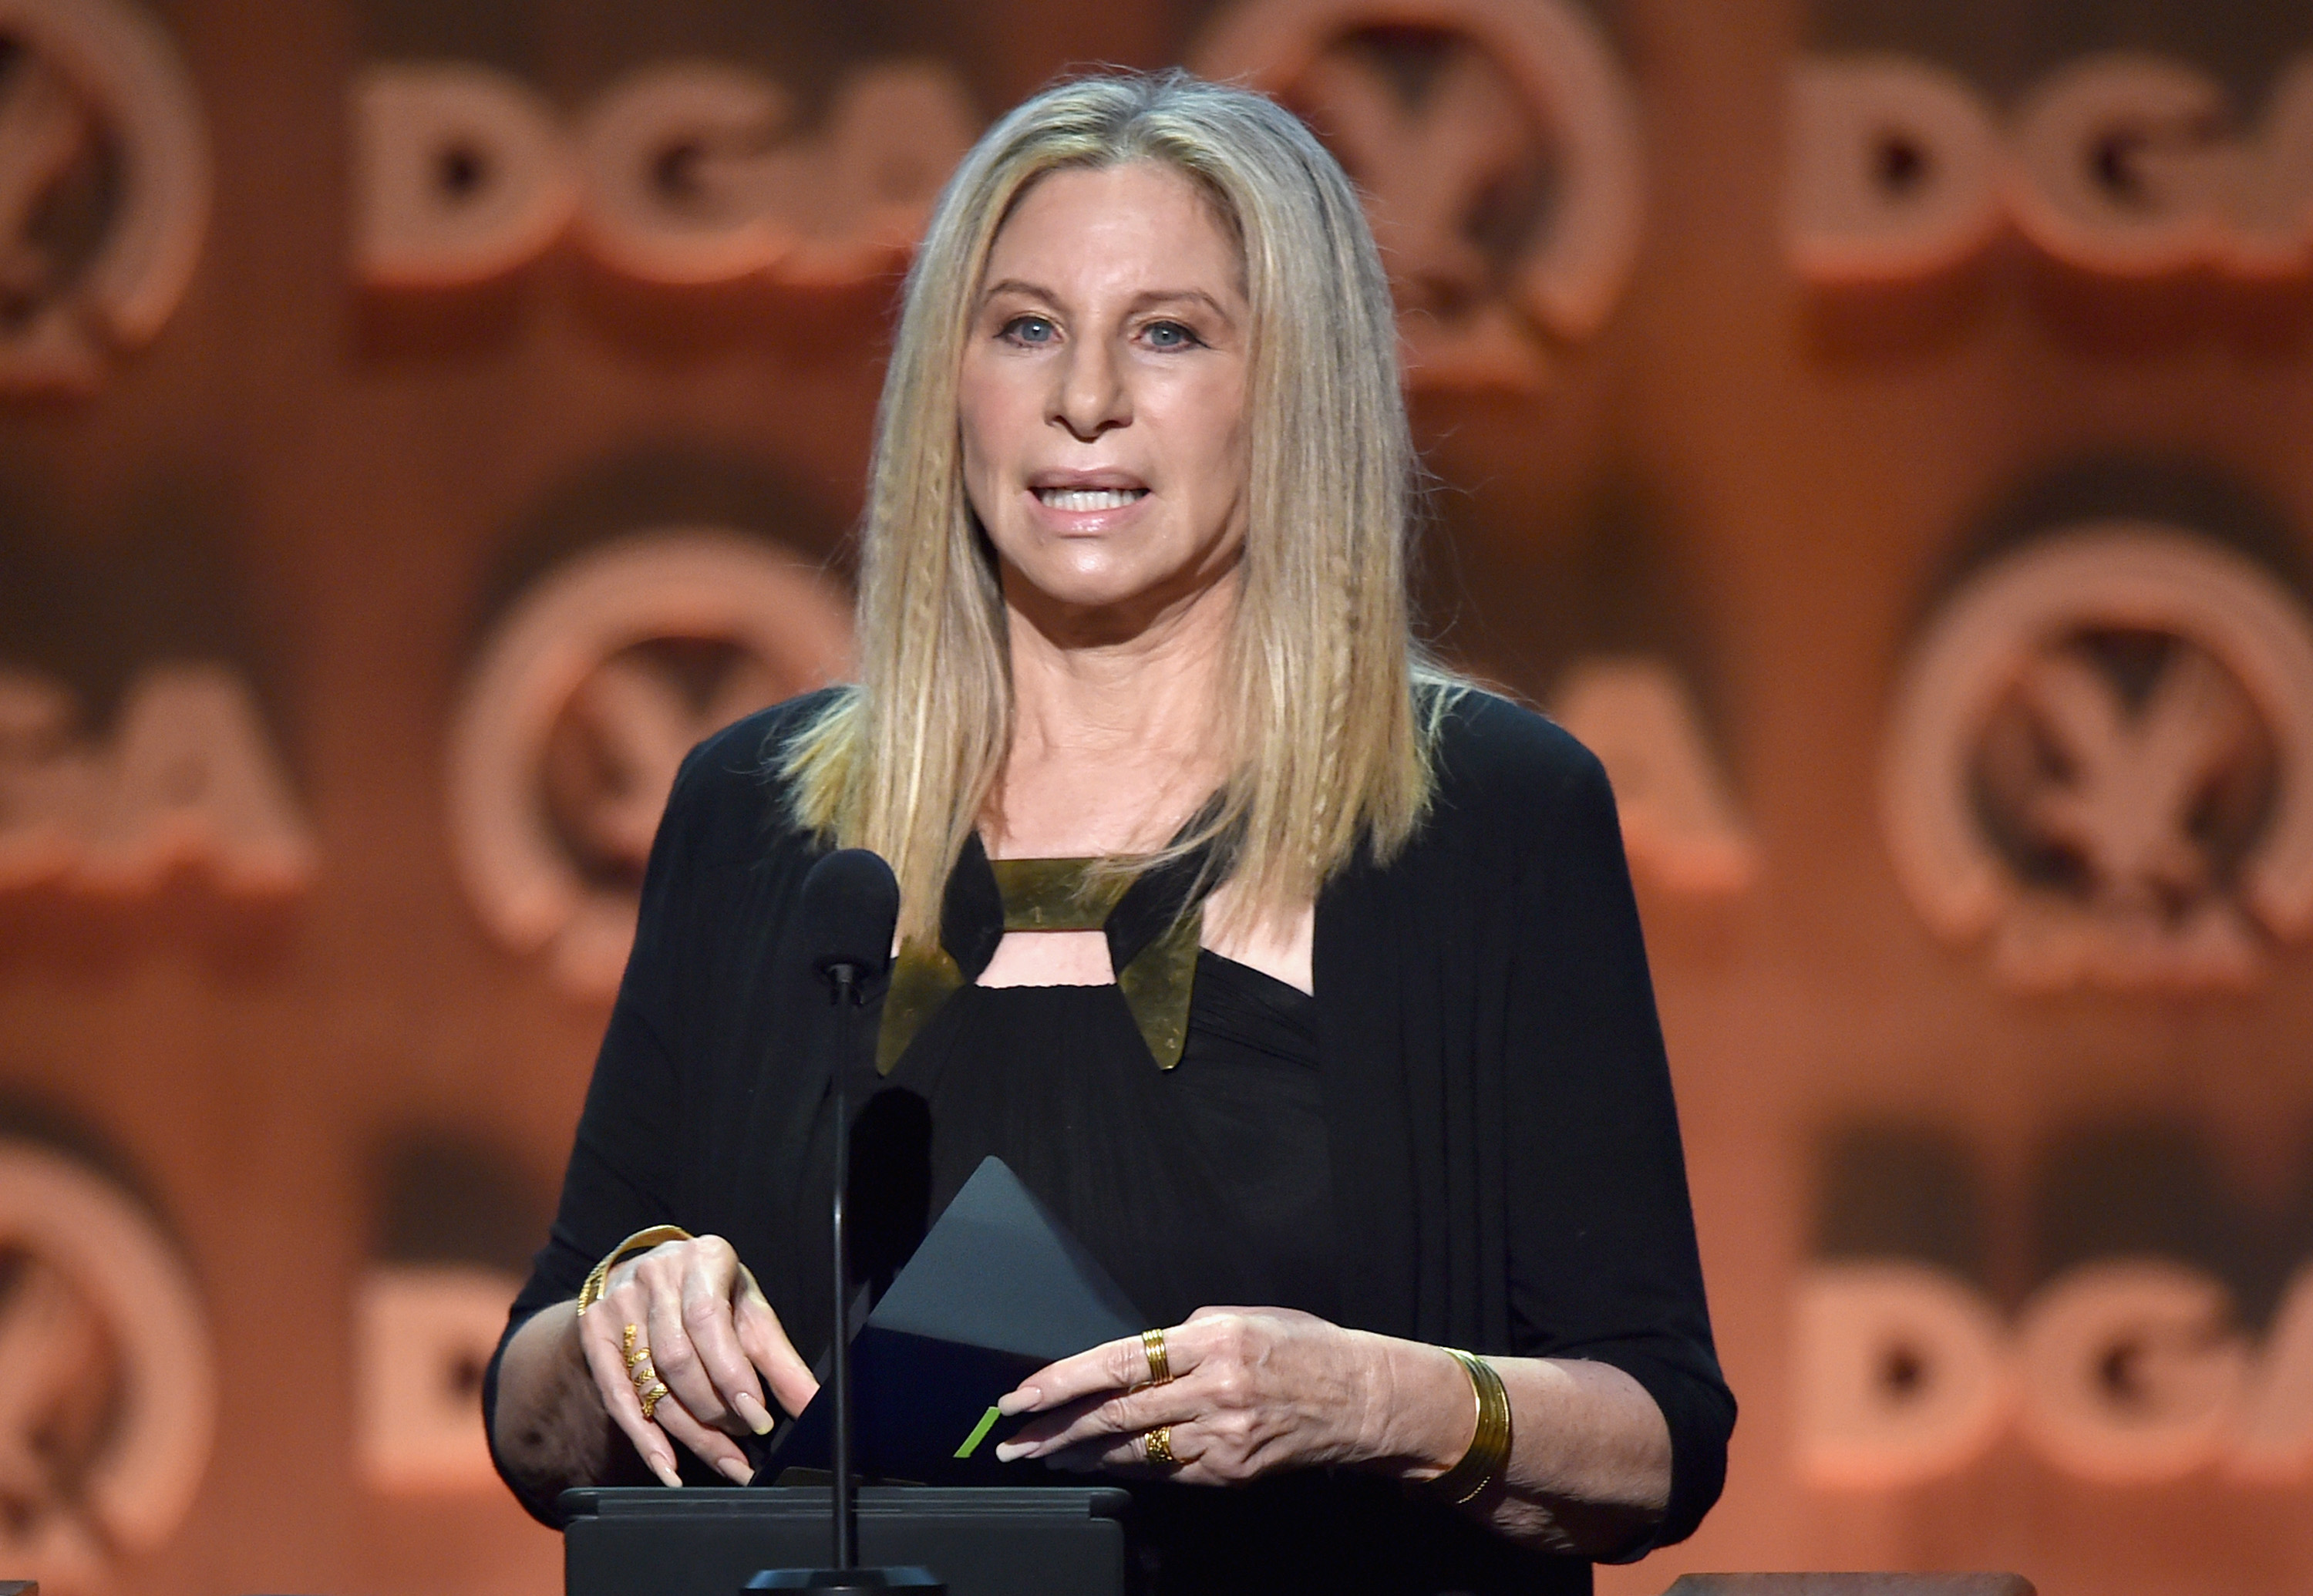 Entertainer Barbra Streisand speaks onstage at the 67th Annual Directors Guild Of America Awards at the Hyatt Regency Century Plaza on Feb. 7, 2015, in Century City, Calif.